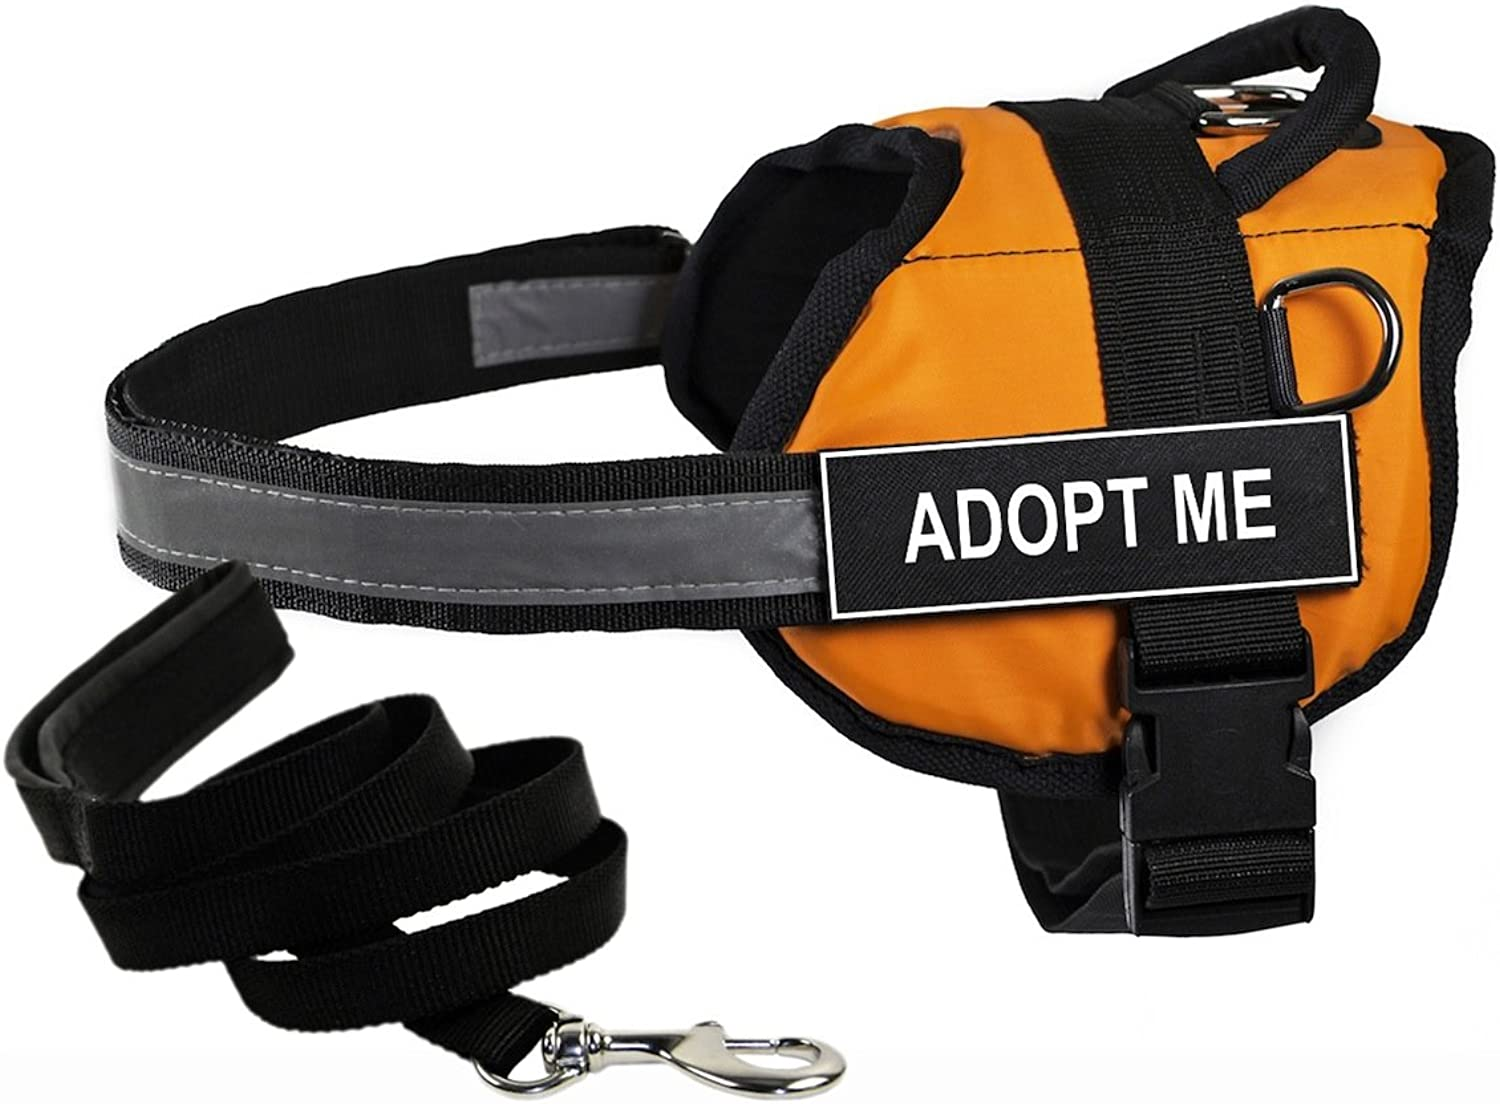 Dean & Tyler's DT Works orange ADOPT ME Harness with, Large, and Black 6 ft Padded Puppy Leash.